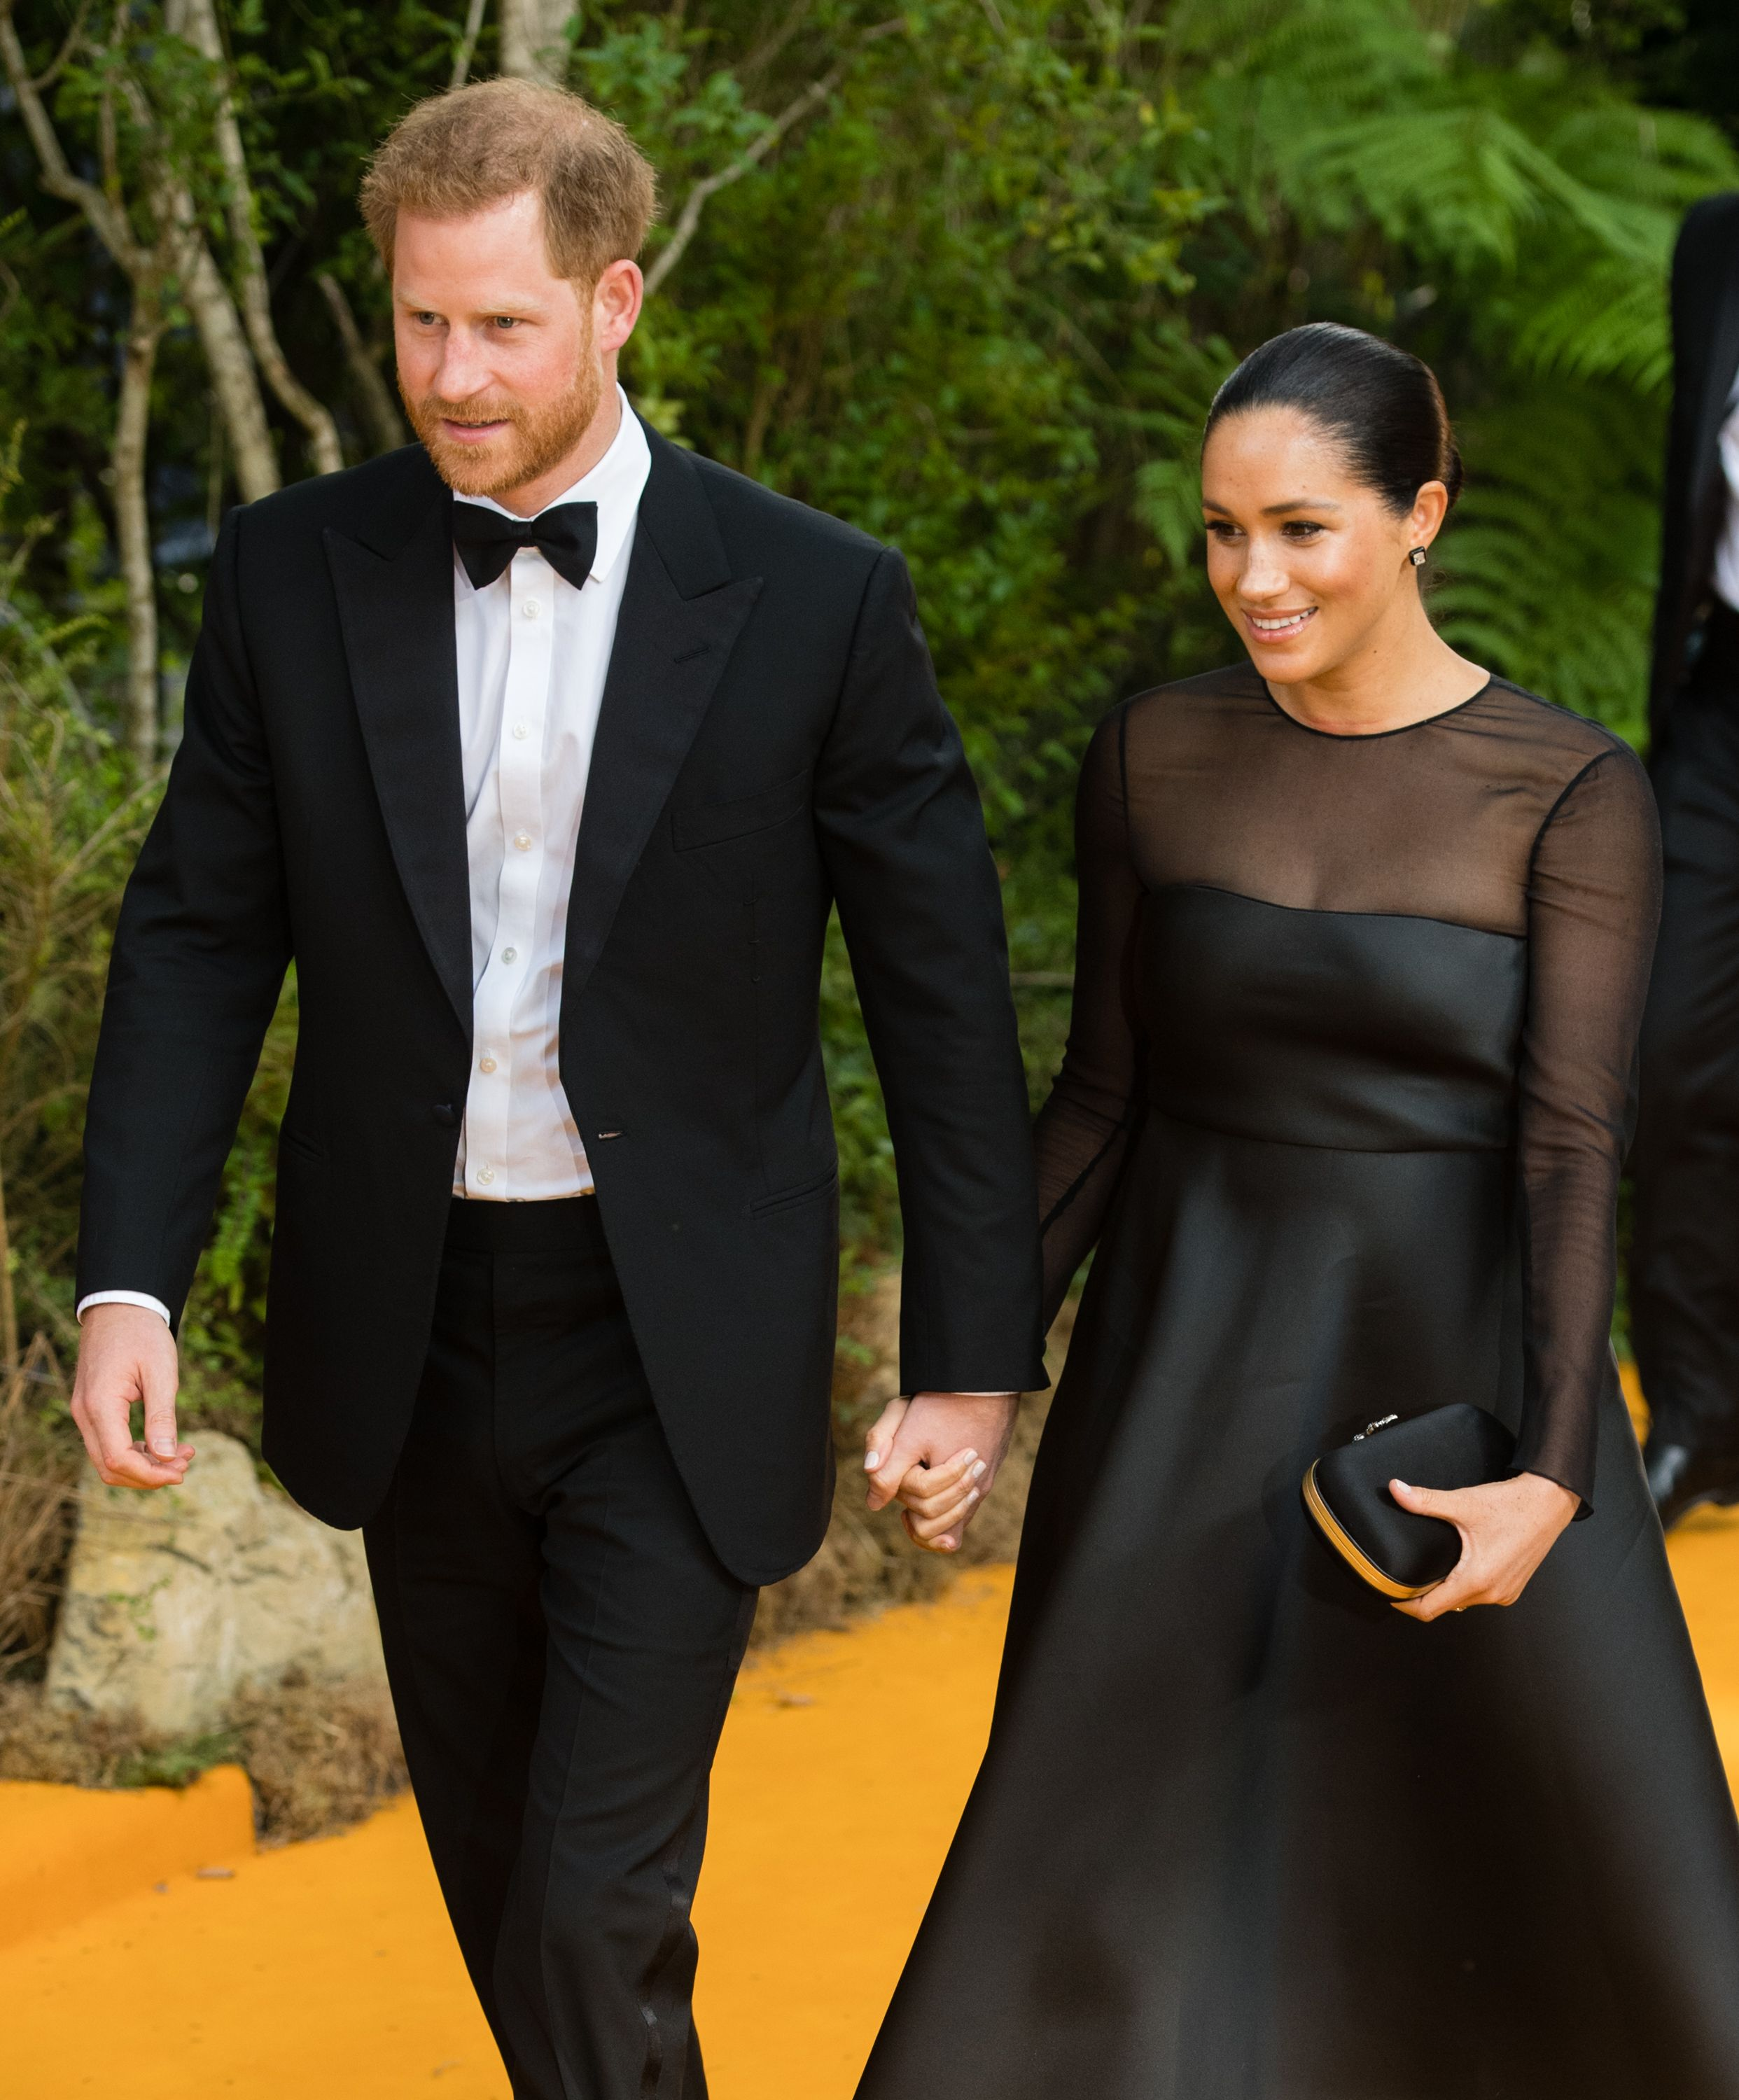 Meghan Markle and Prince Harry post defiant and inspiring message on Instagram about peace